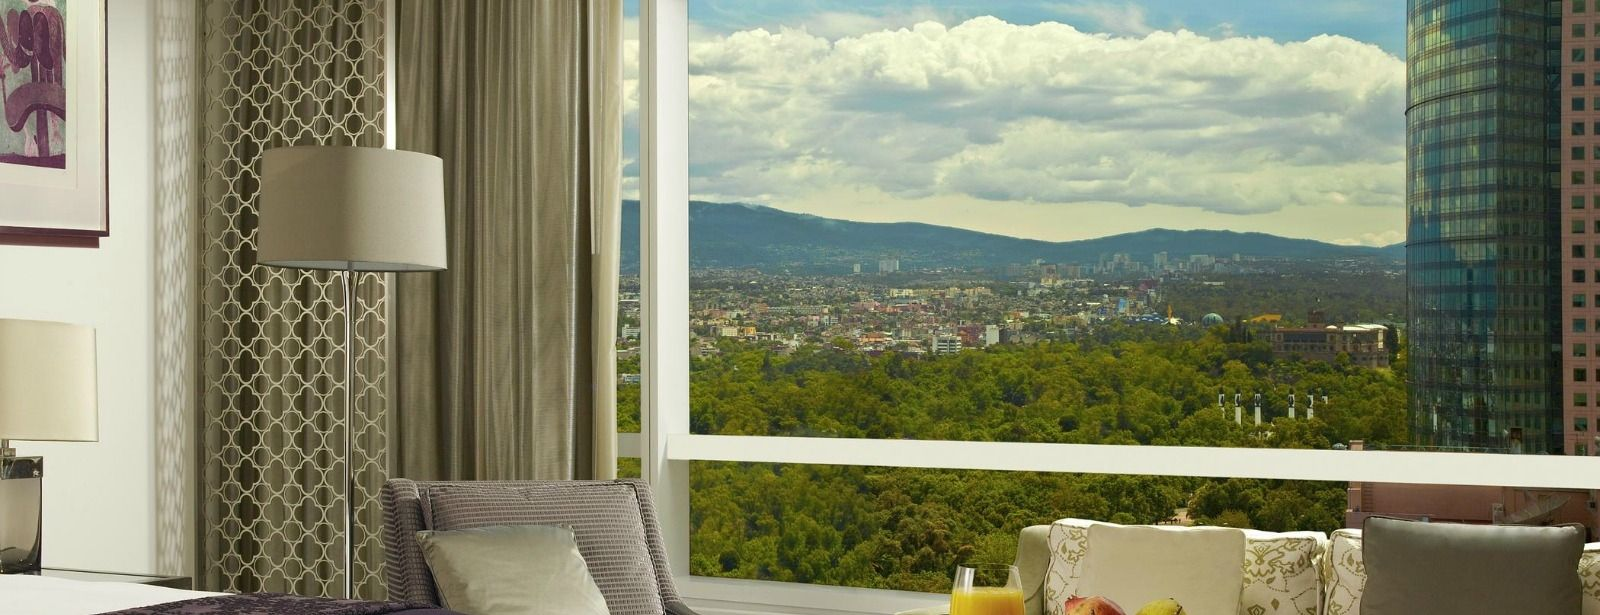 Habitación Grand Deluxe - St. Regis Mexico City